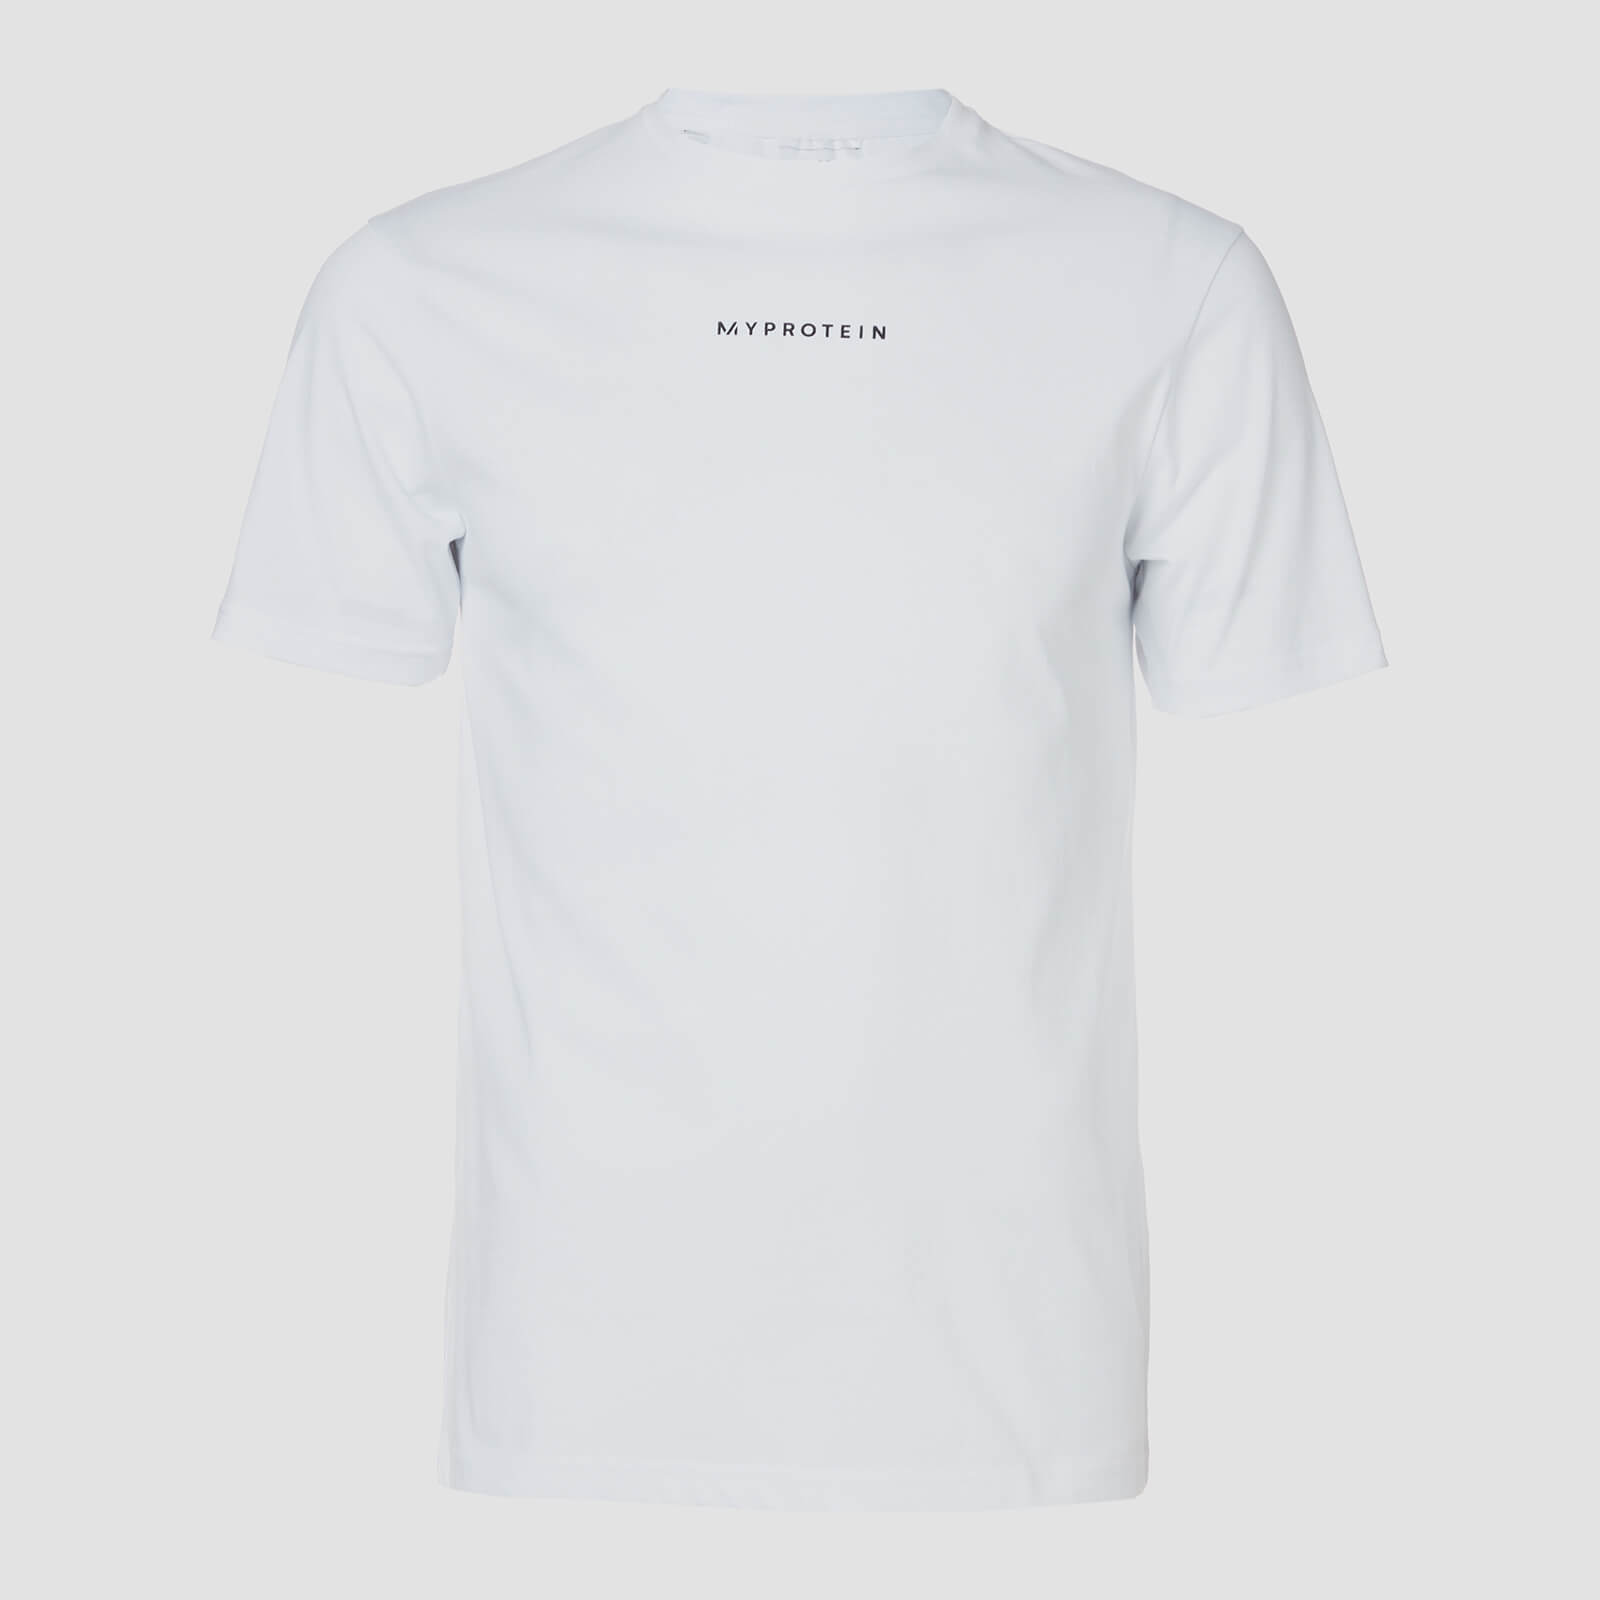 T-Shirt Contemporain The Original - Blanc - M